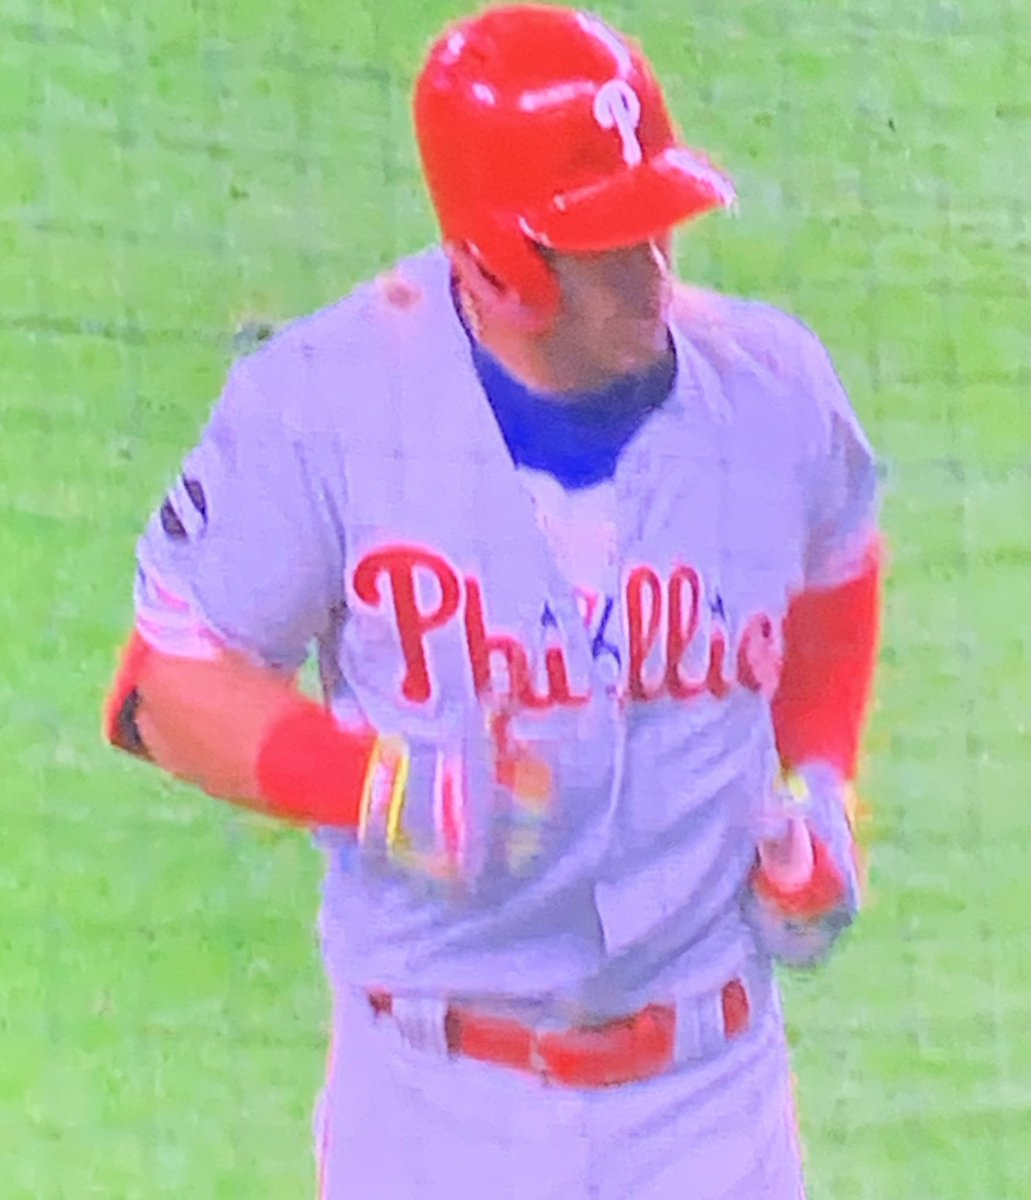 Cesar with the #PhilaUnite undershirt 👀 #RingTheBell @UniWatch